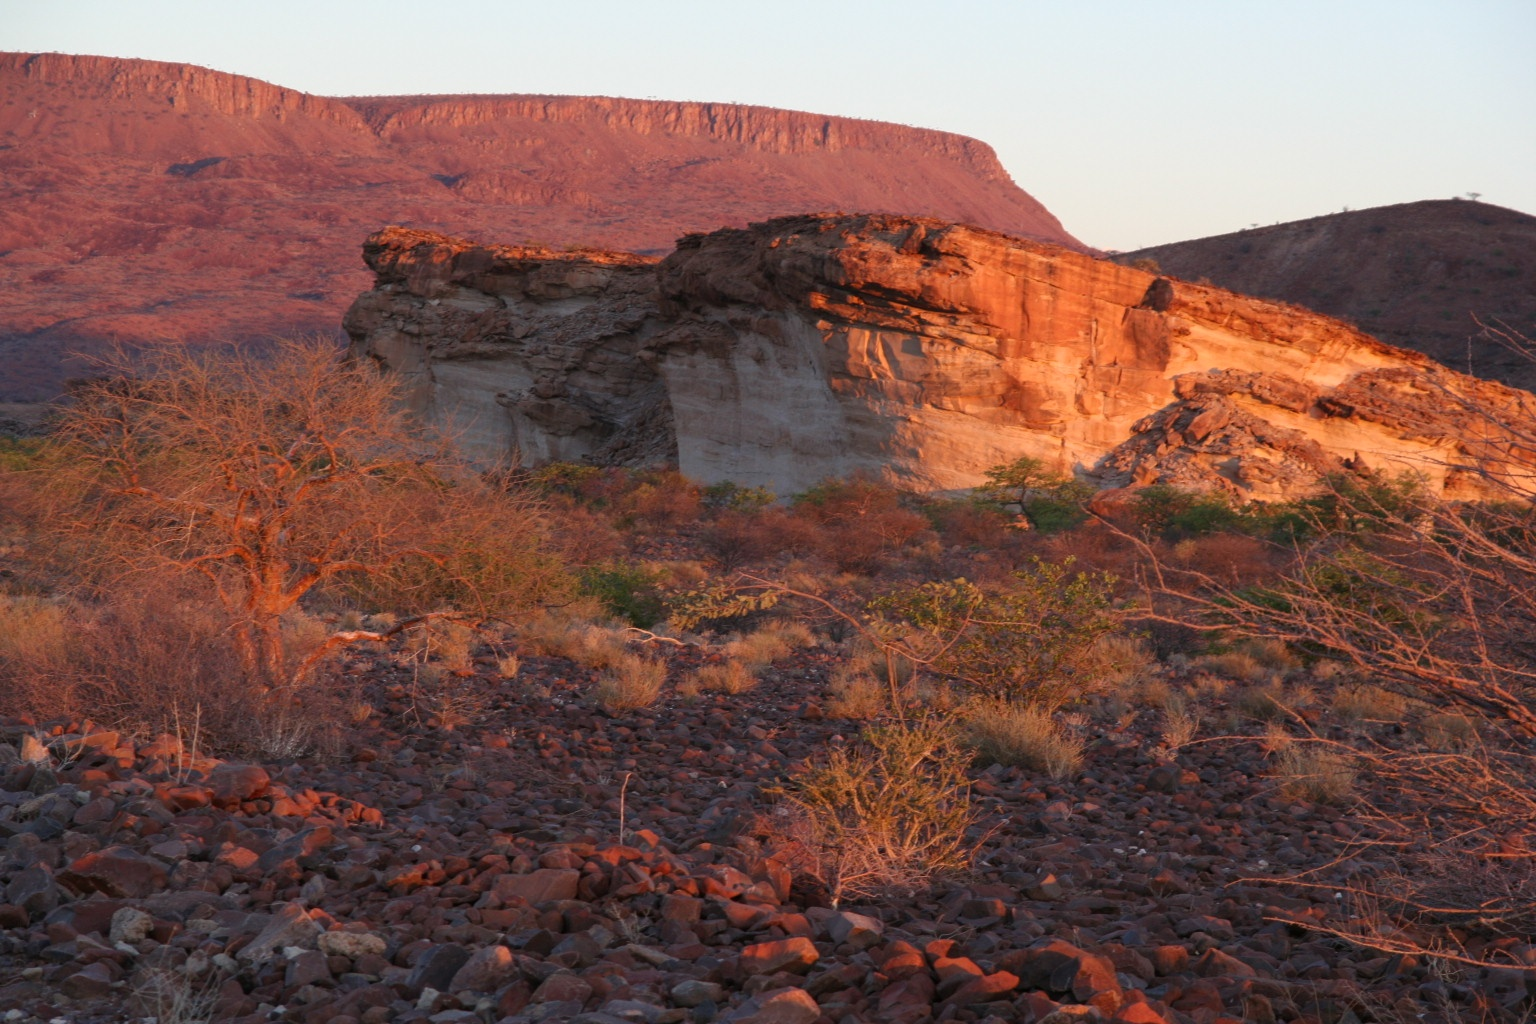 Sunset in Damaraland